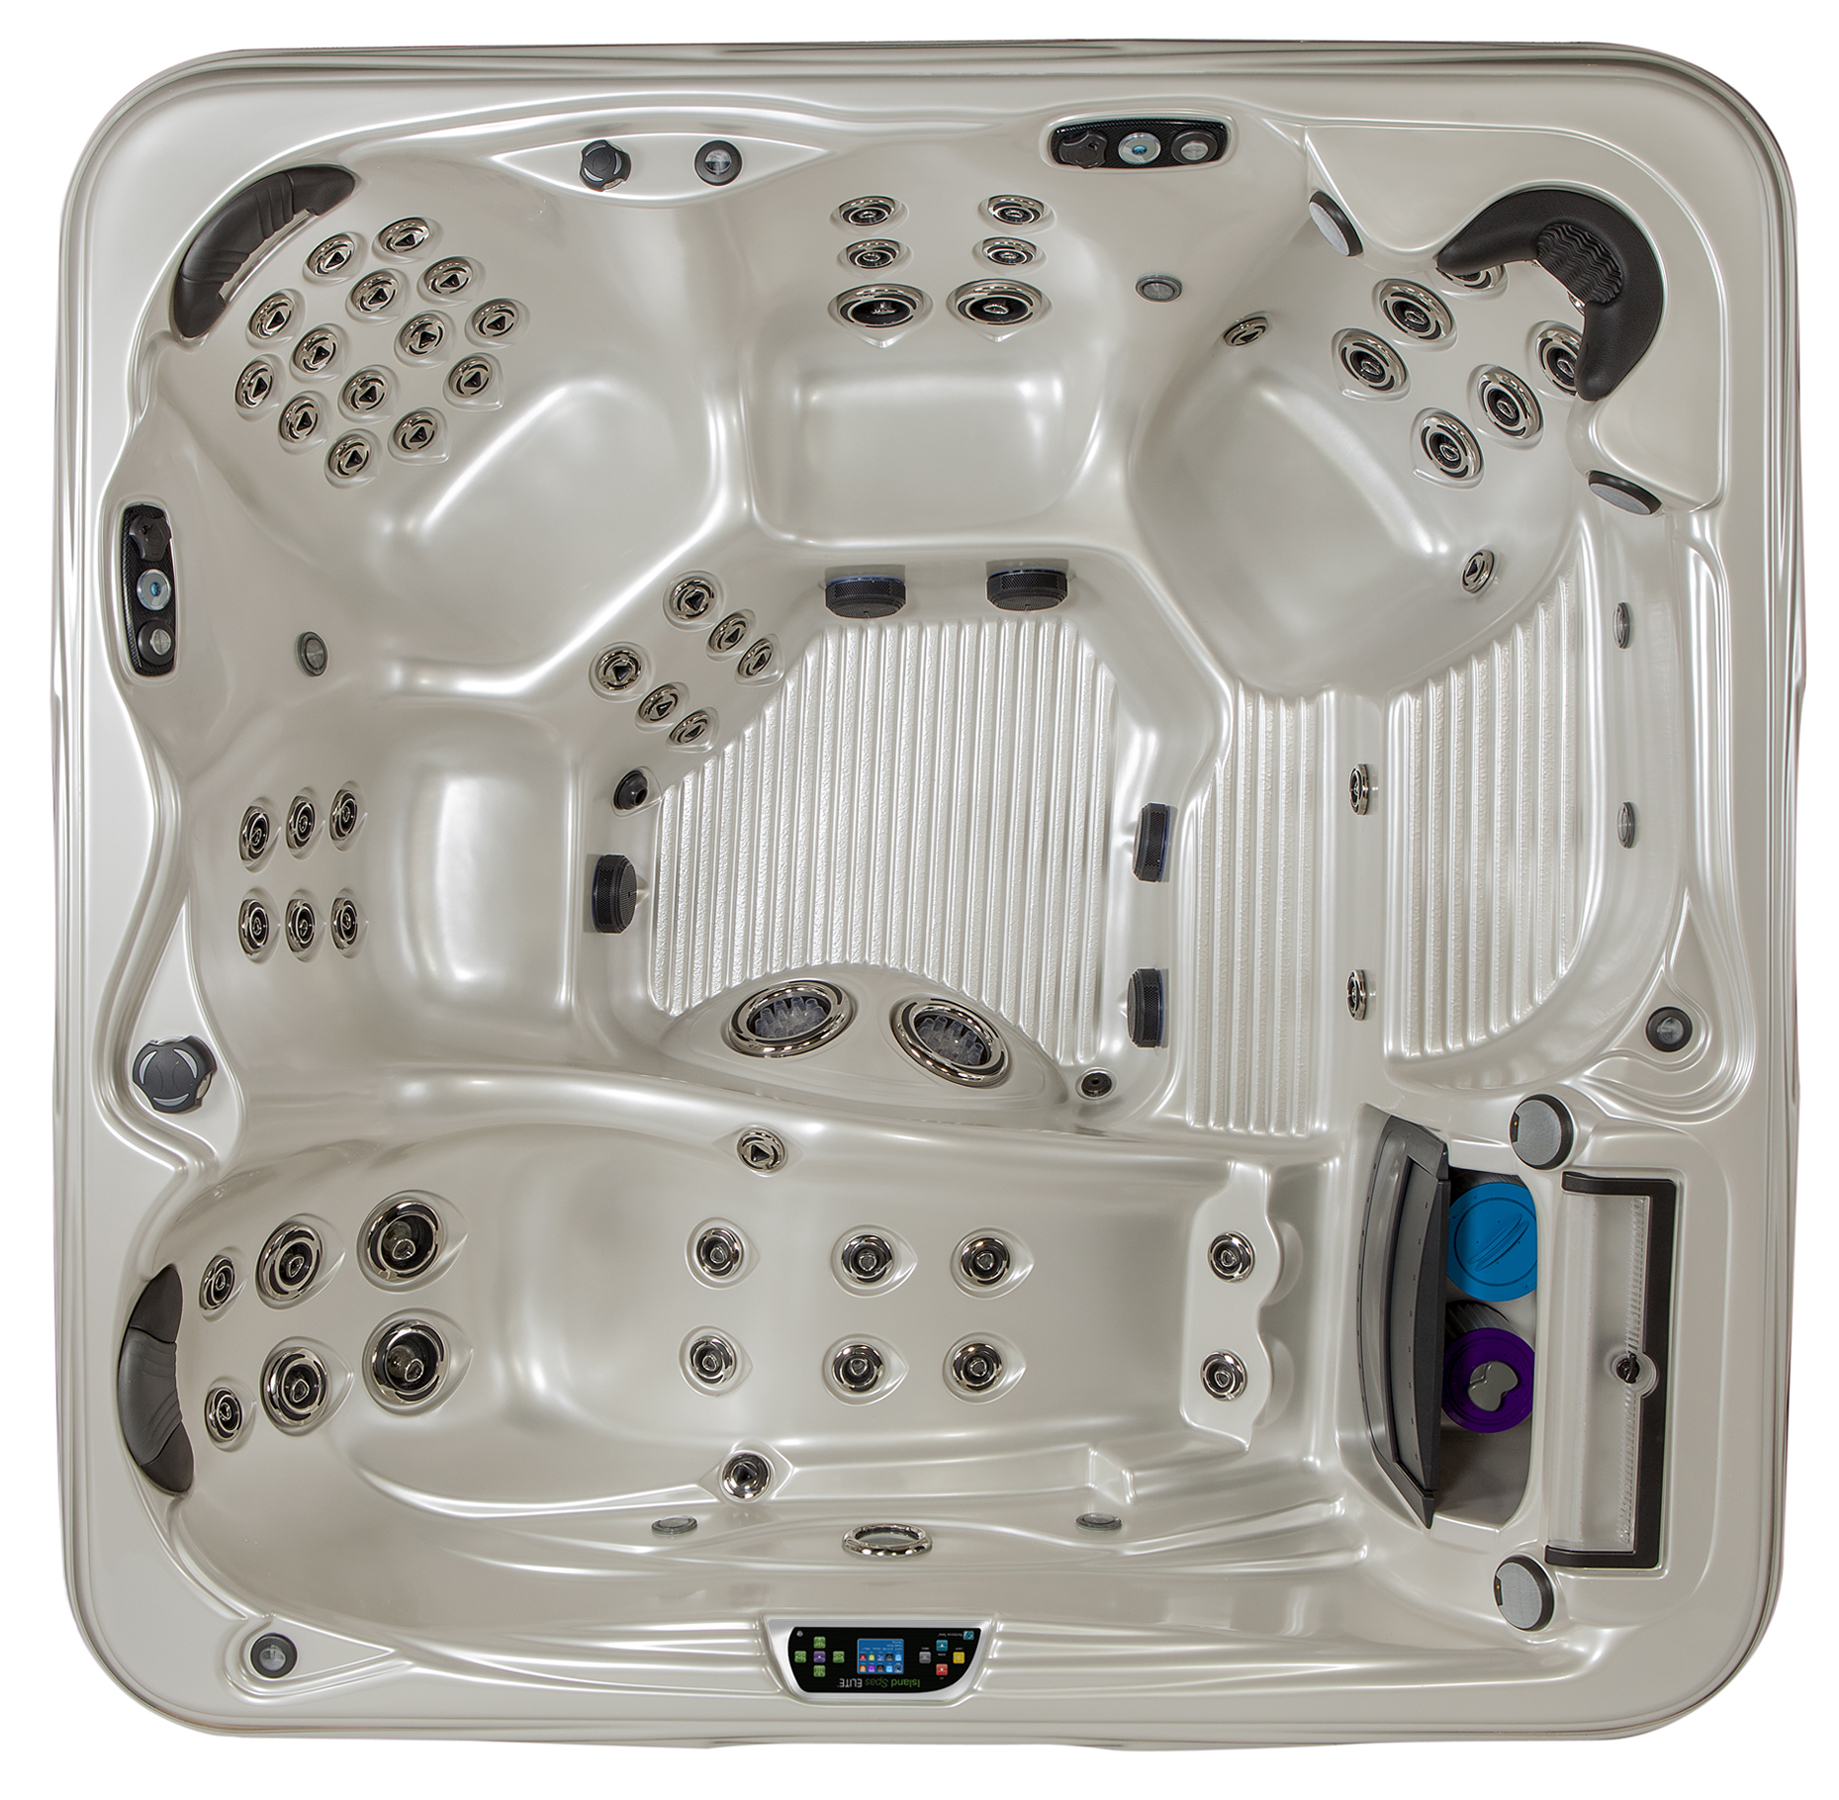 Grand Bahama Elite 8' Hot Tub by Island Spas available at Prestige Pools and Spas